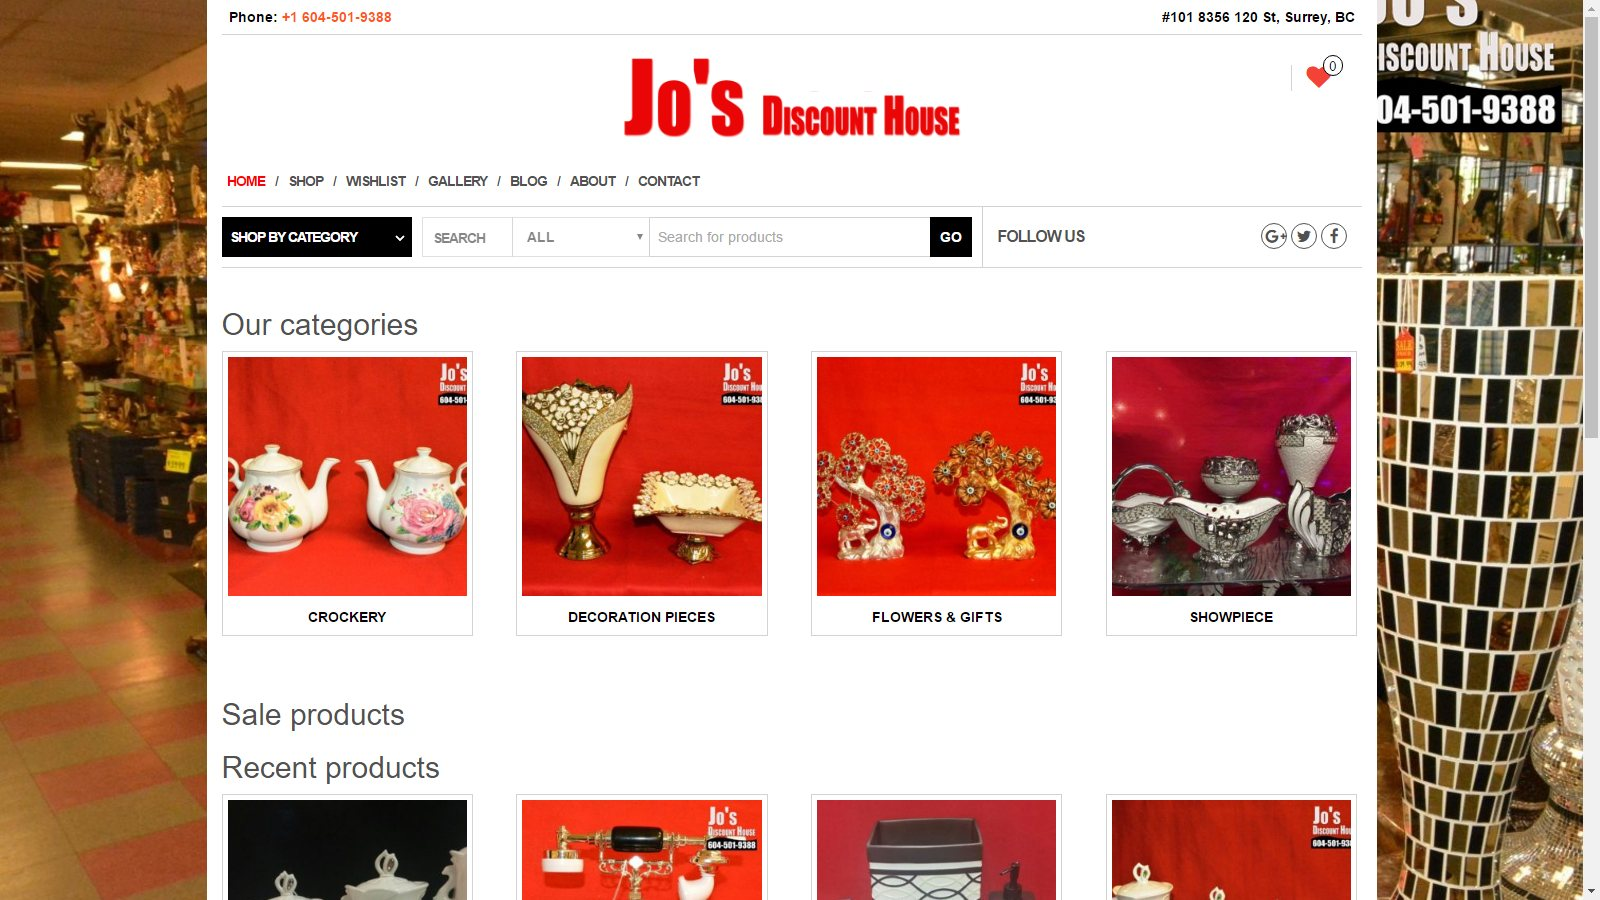 JO'S DISCOUNT HOUSE